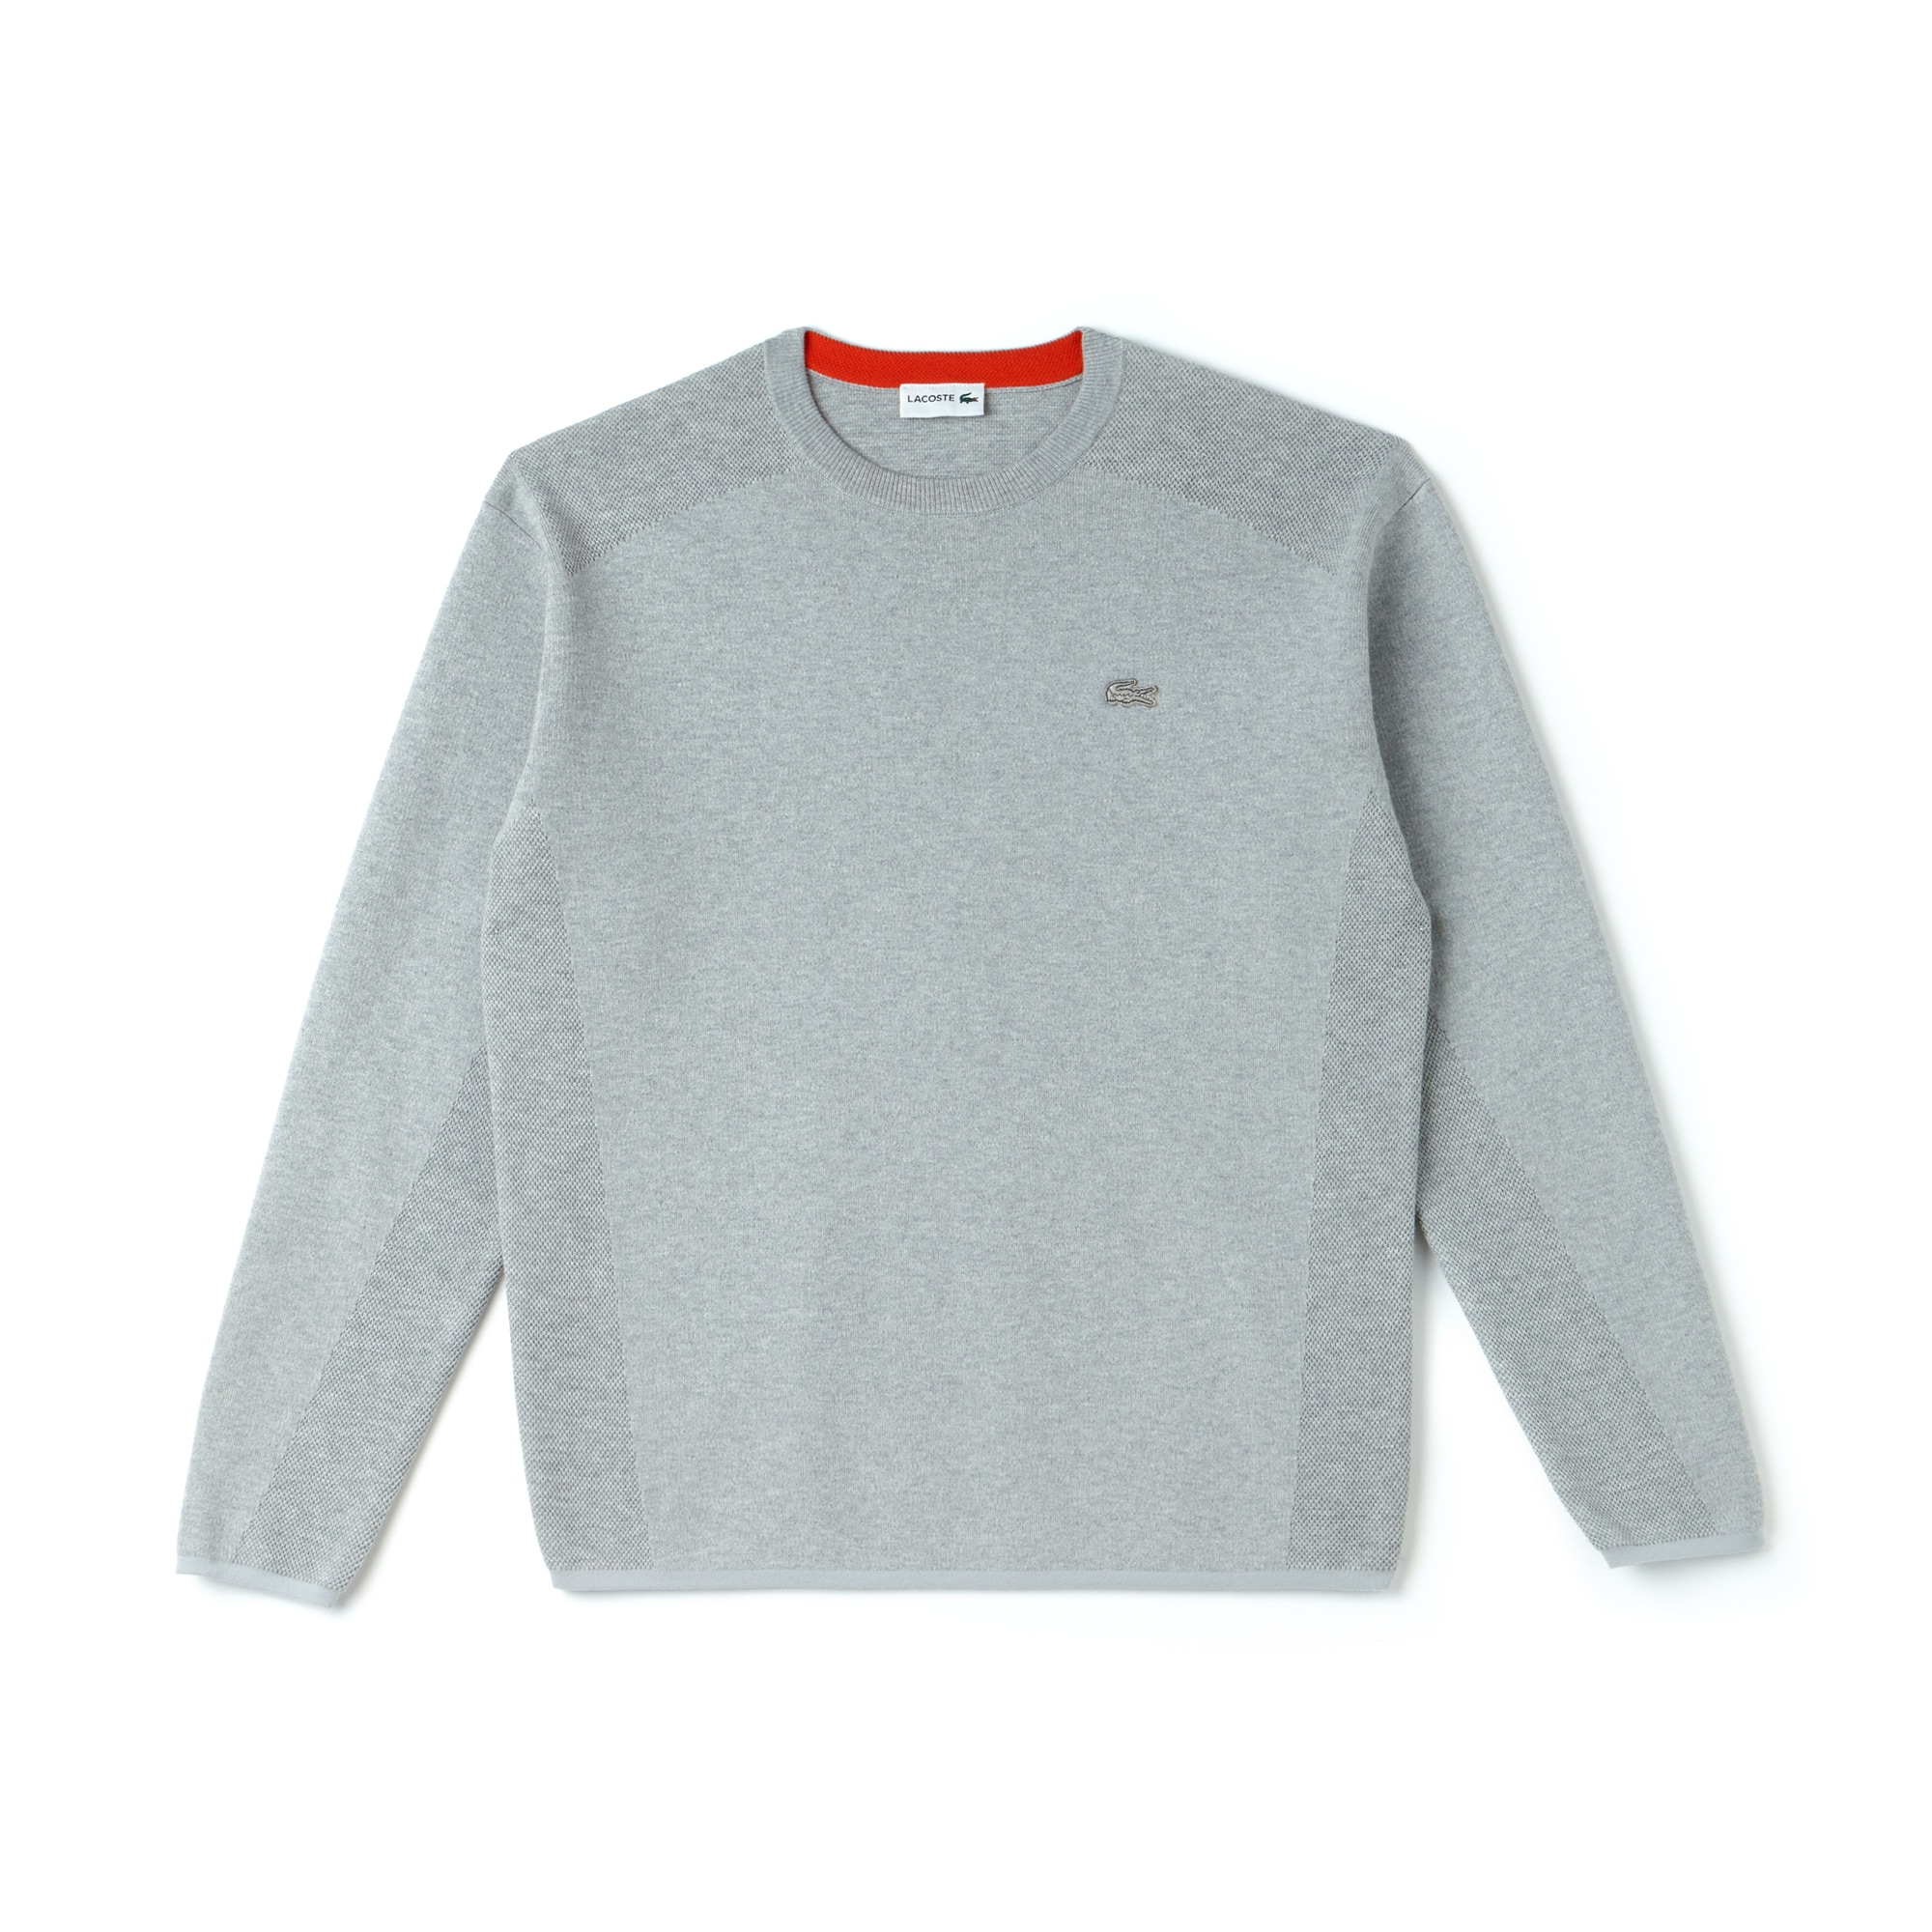 Men's Motion Crew Neck Coolmax Cotton Sweater